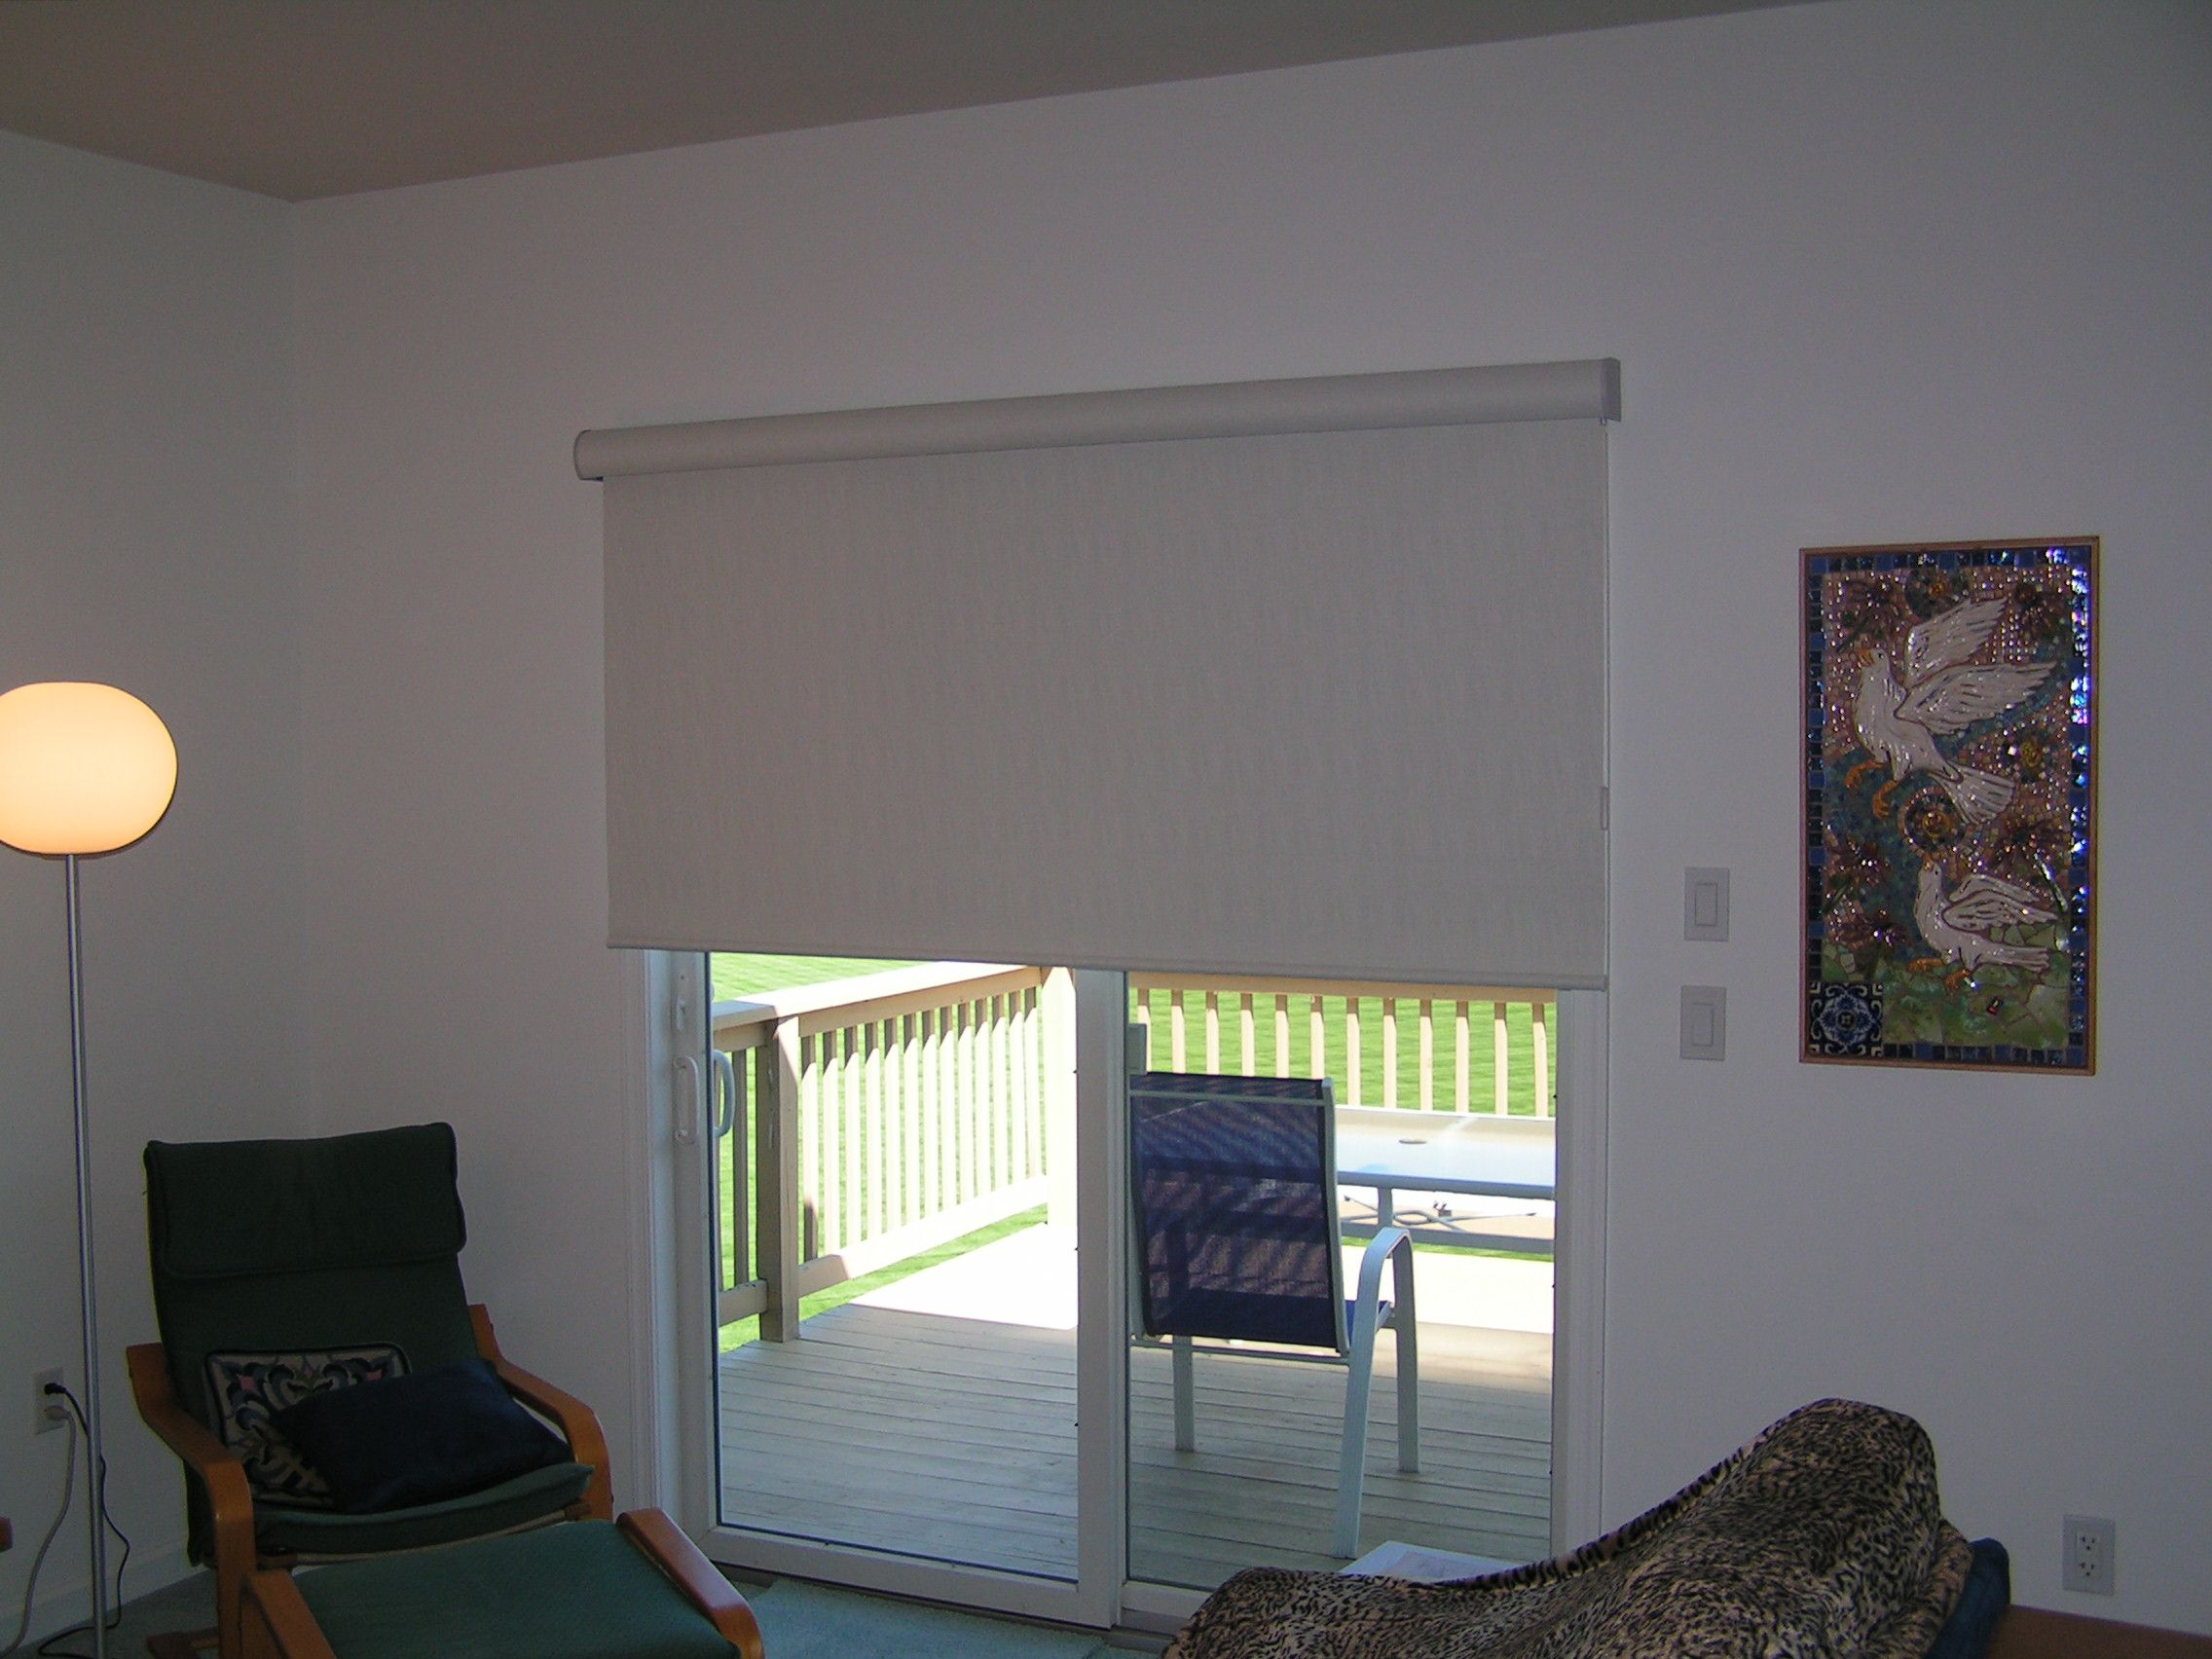 Big Roller Shade Over A Sliding Patio Door Roller Shades Living